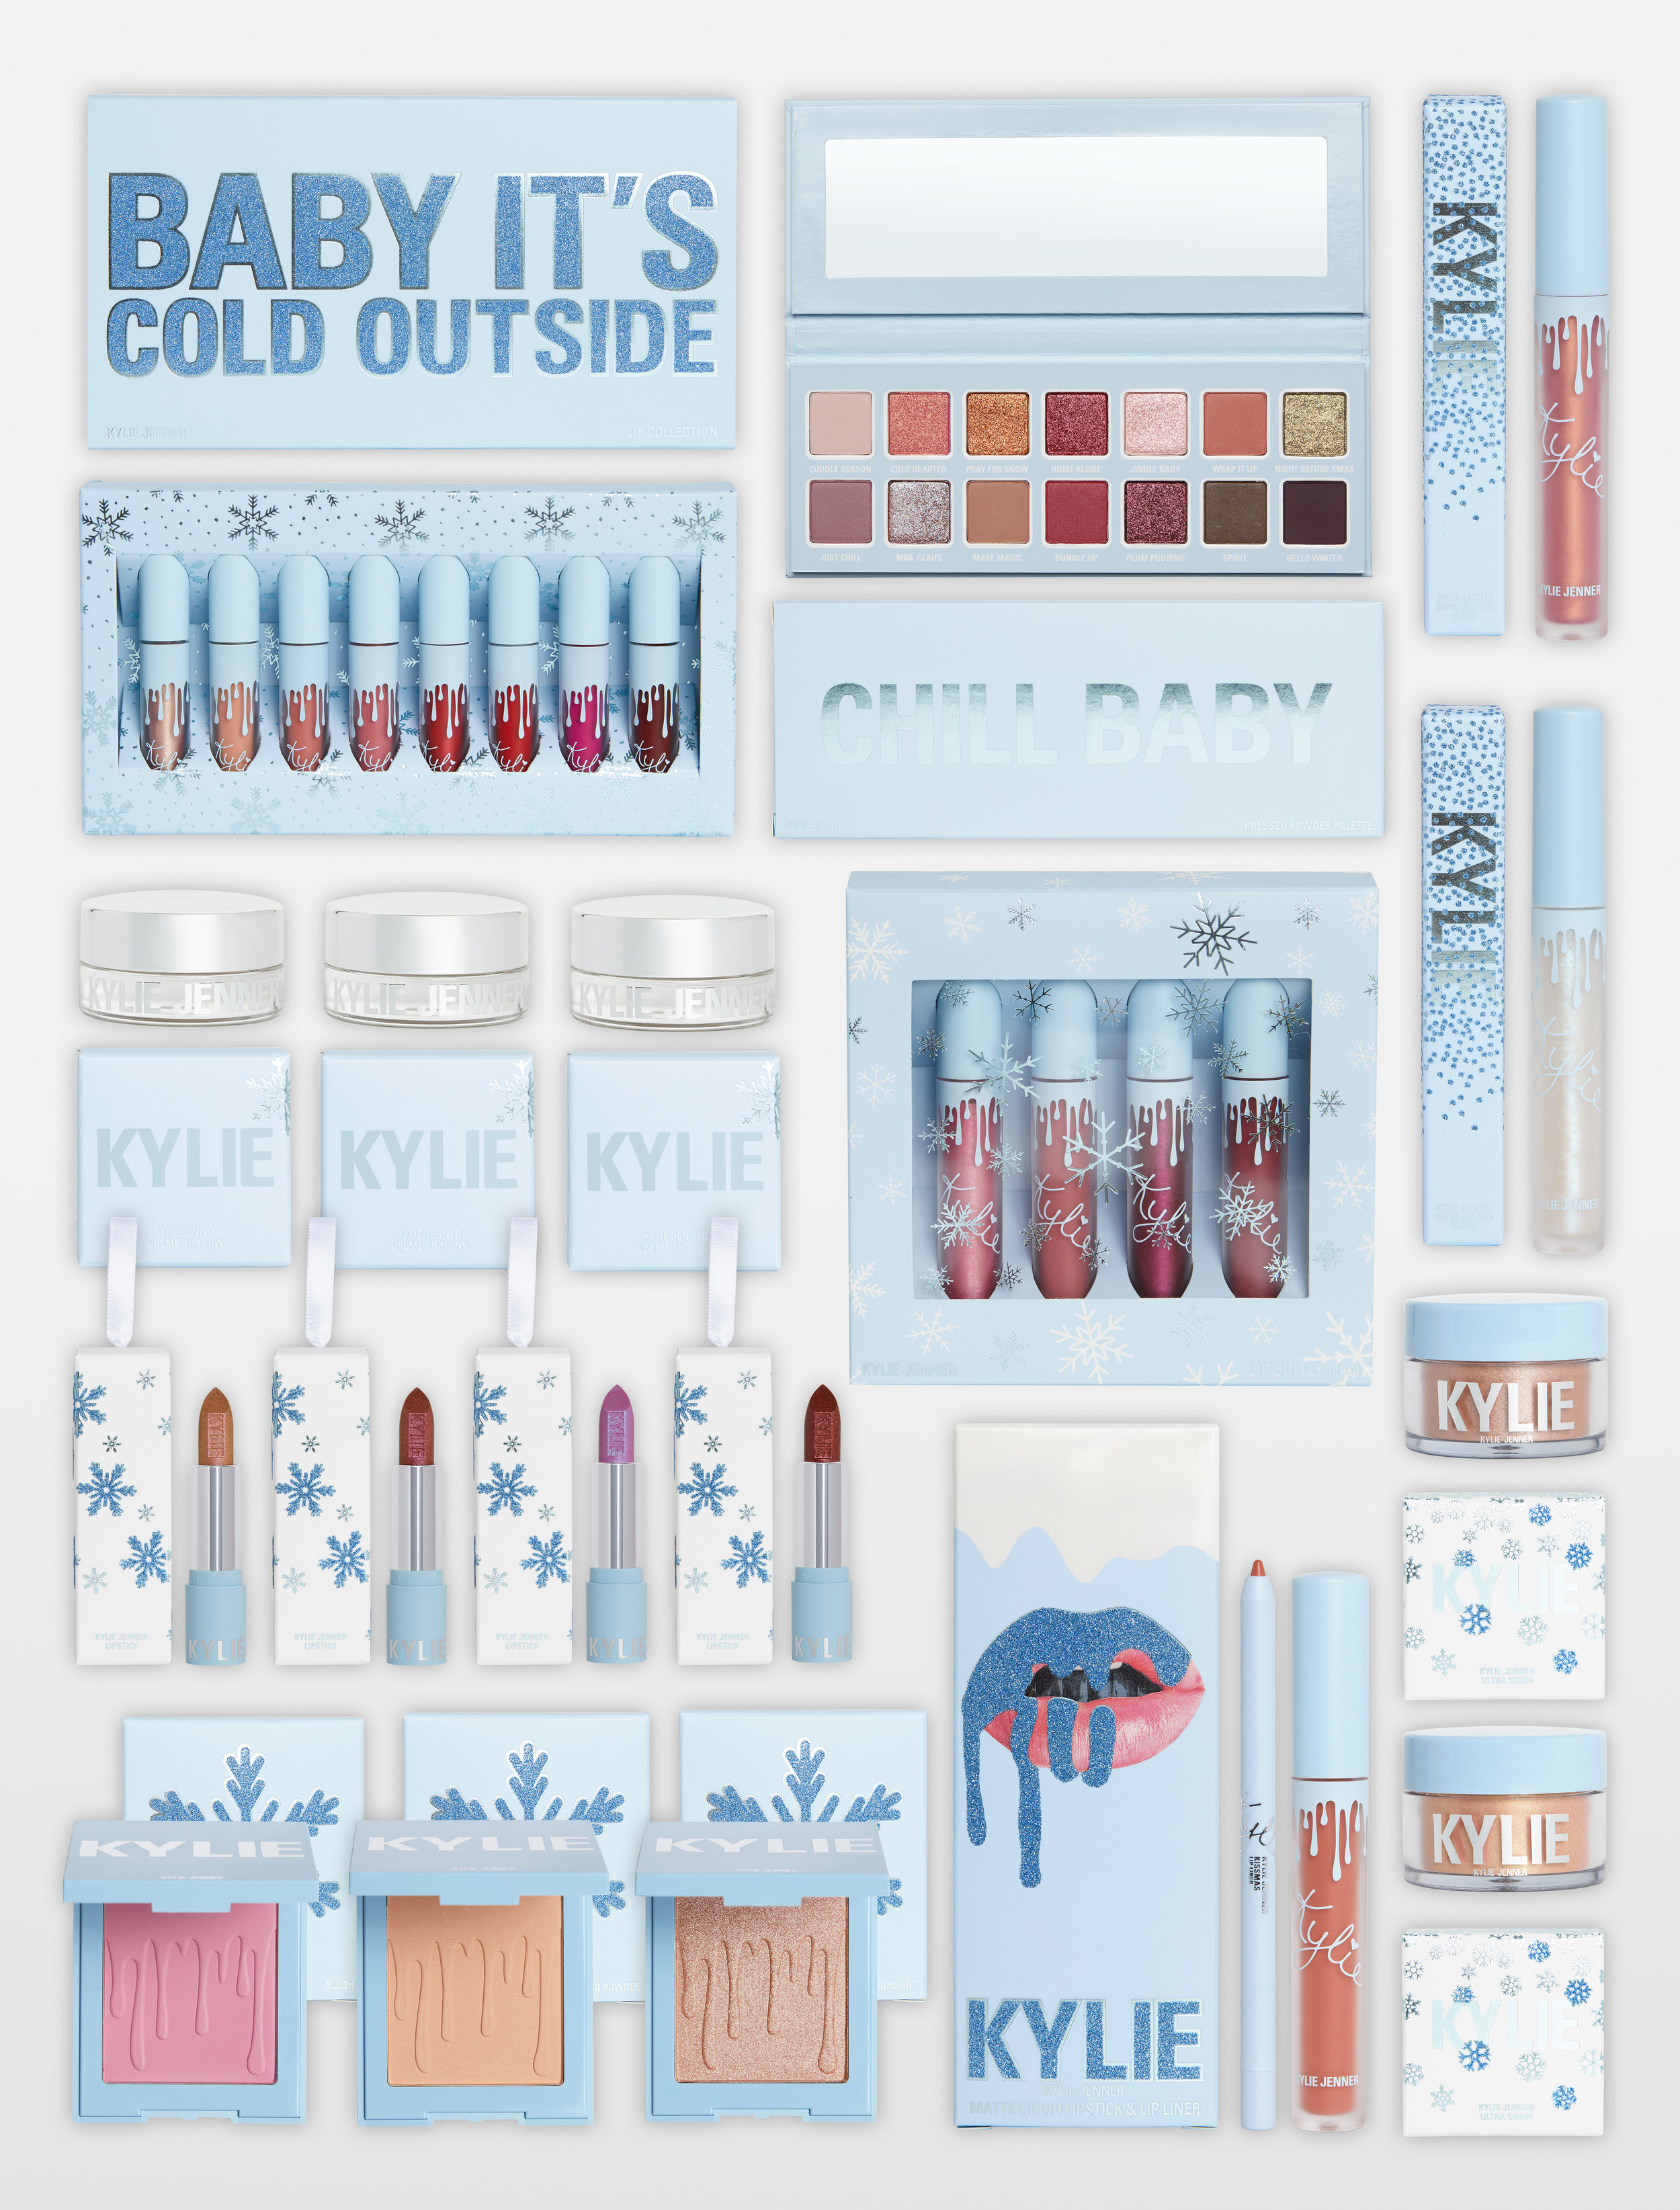 Kylie-Holiday2018-Complete-Bundle.jpg